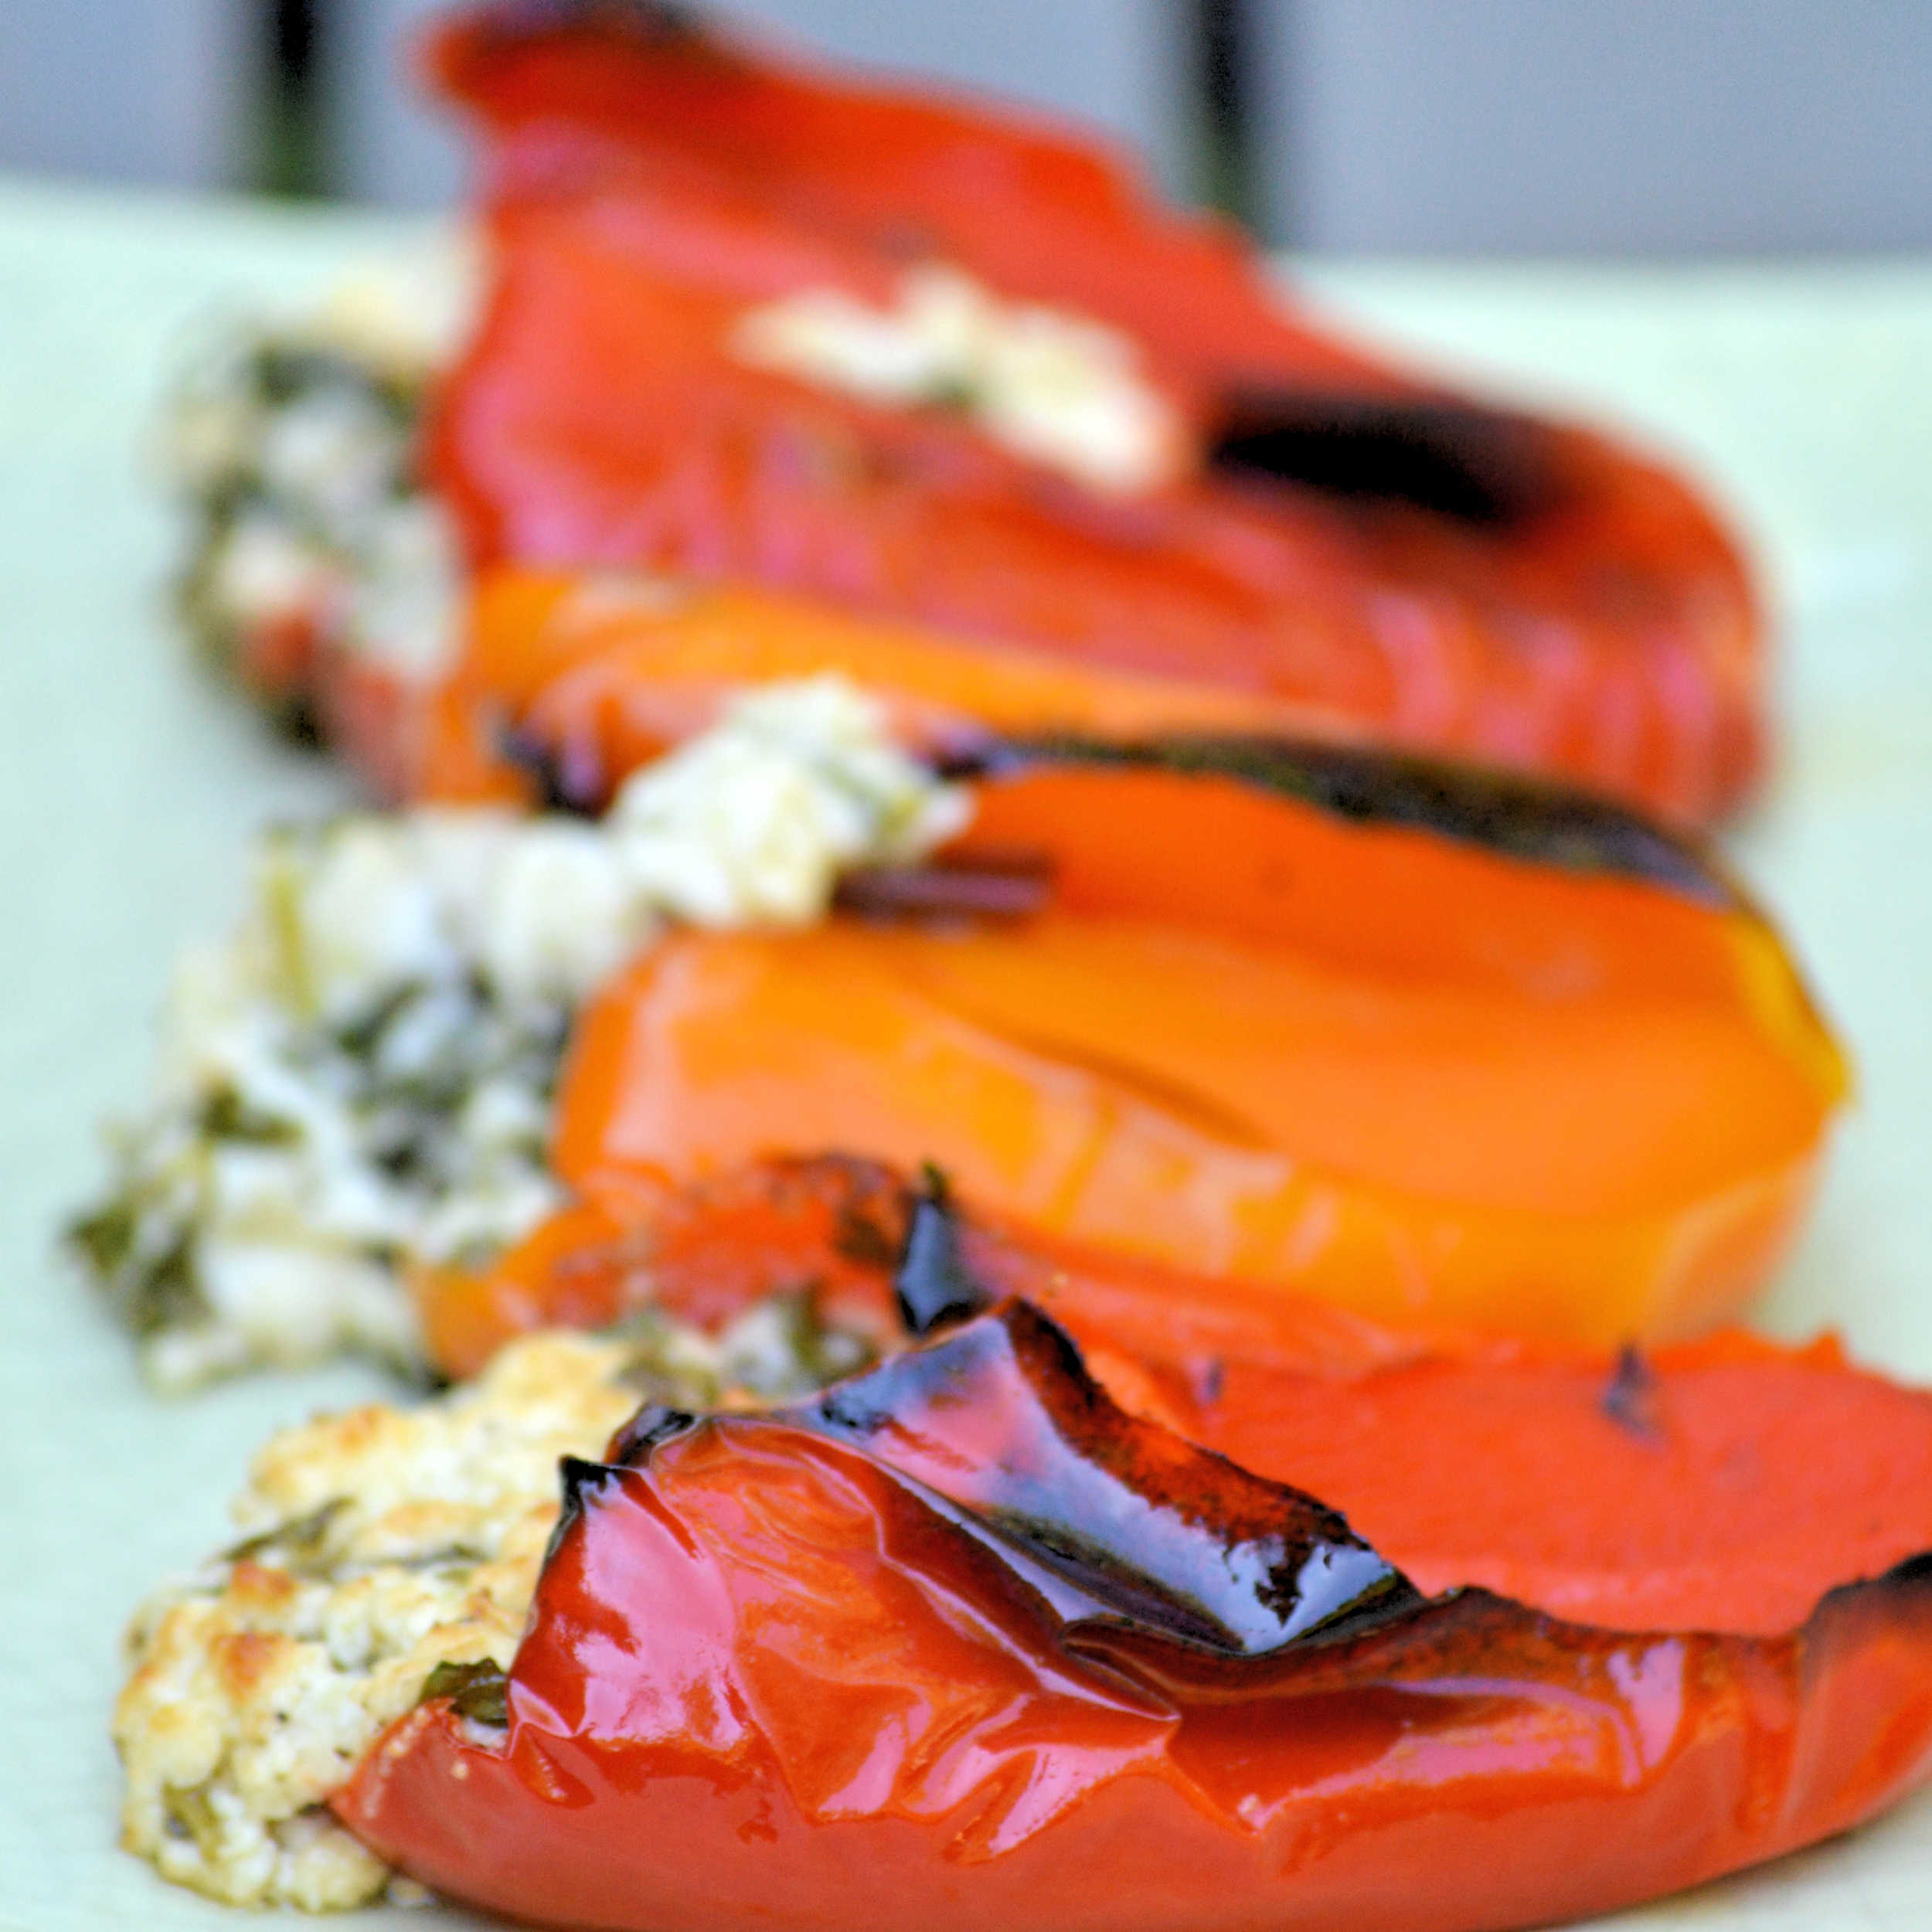 Roasted paprika filled with aromatic feta cheese  Vegetarian / gluten free